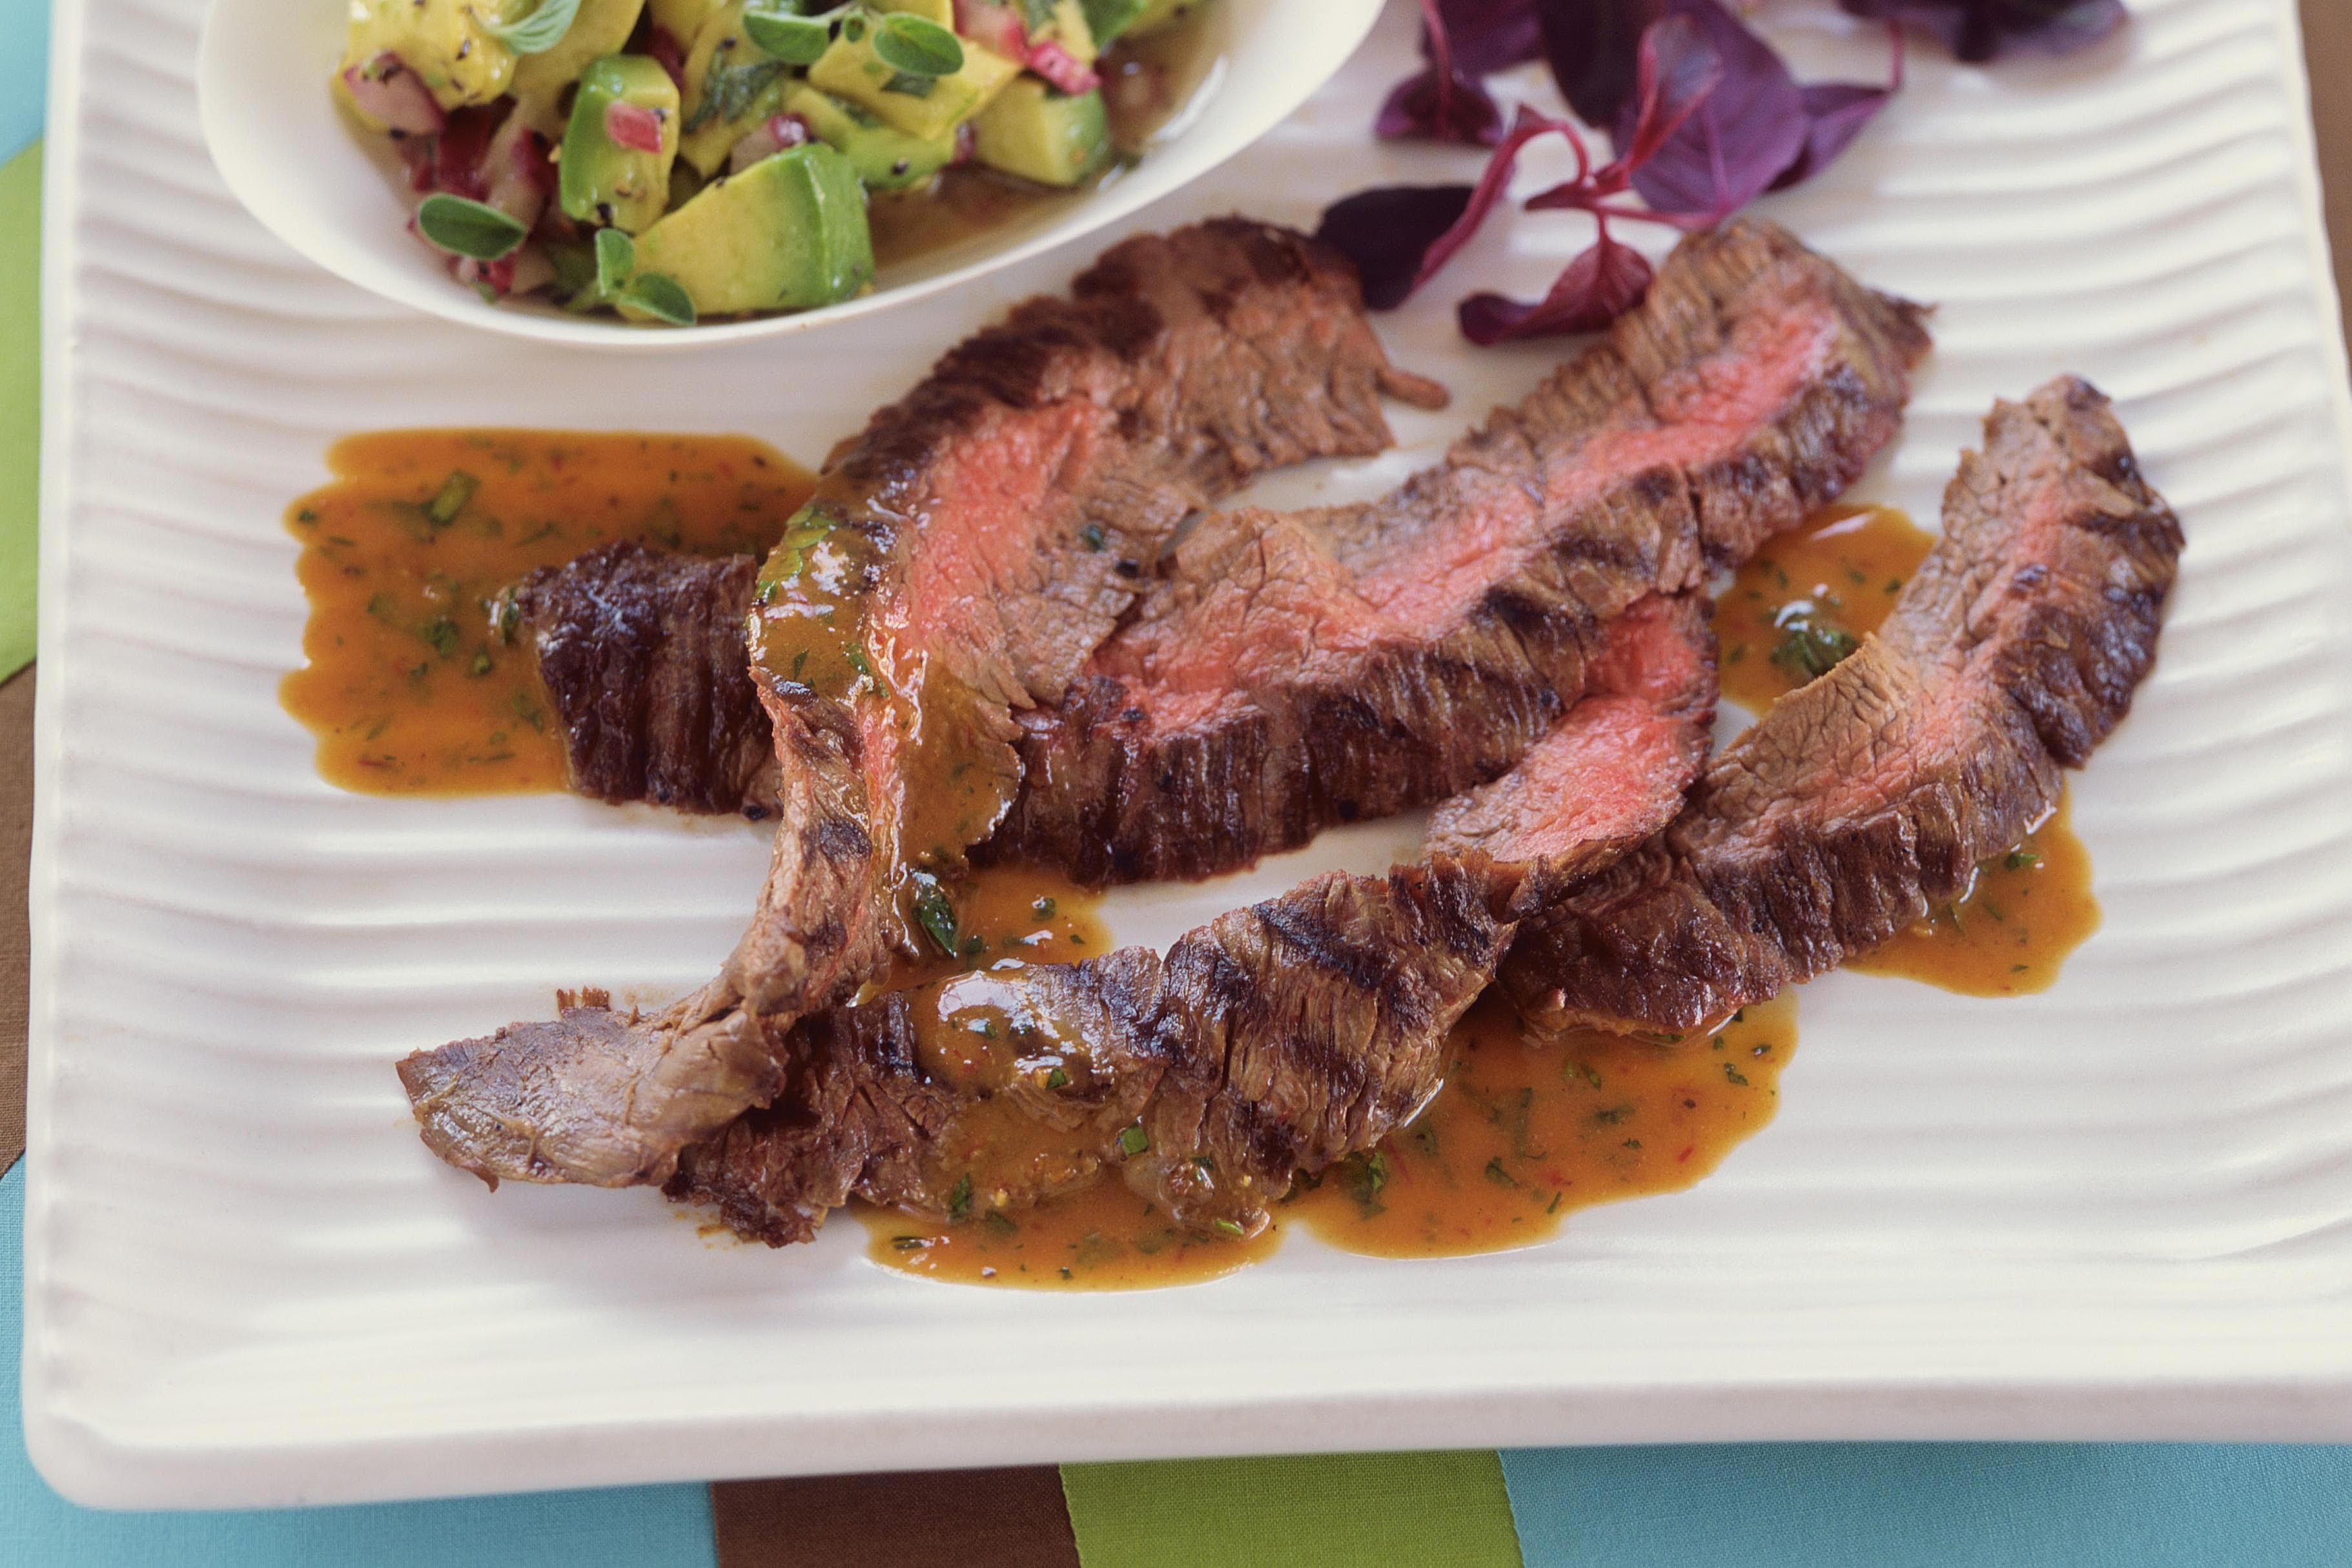 Marinated and Grilled Skirt Steak Proves Easy and Delicious